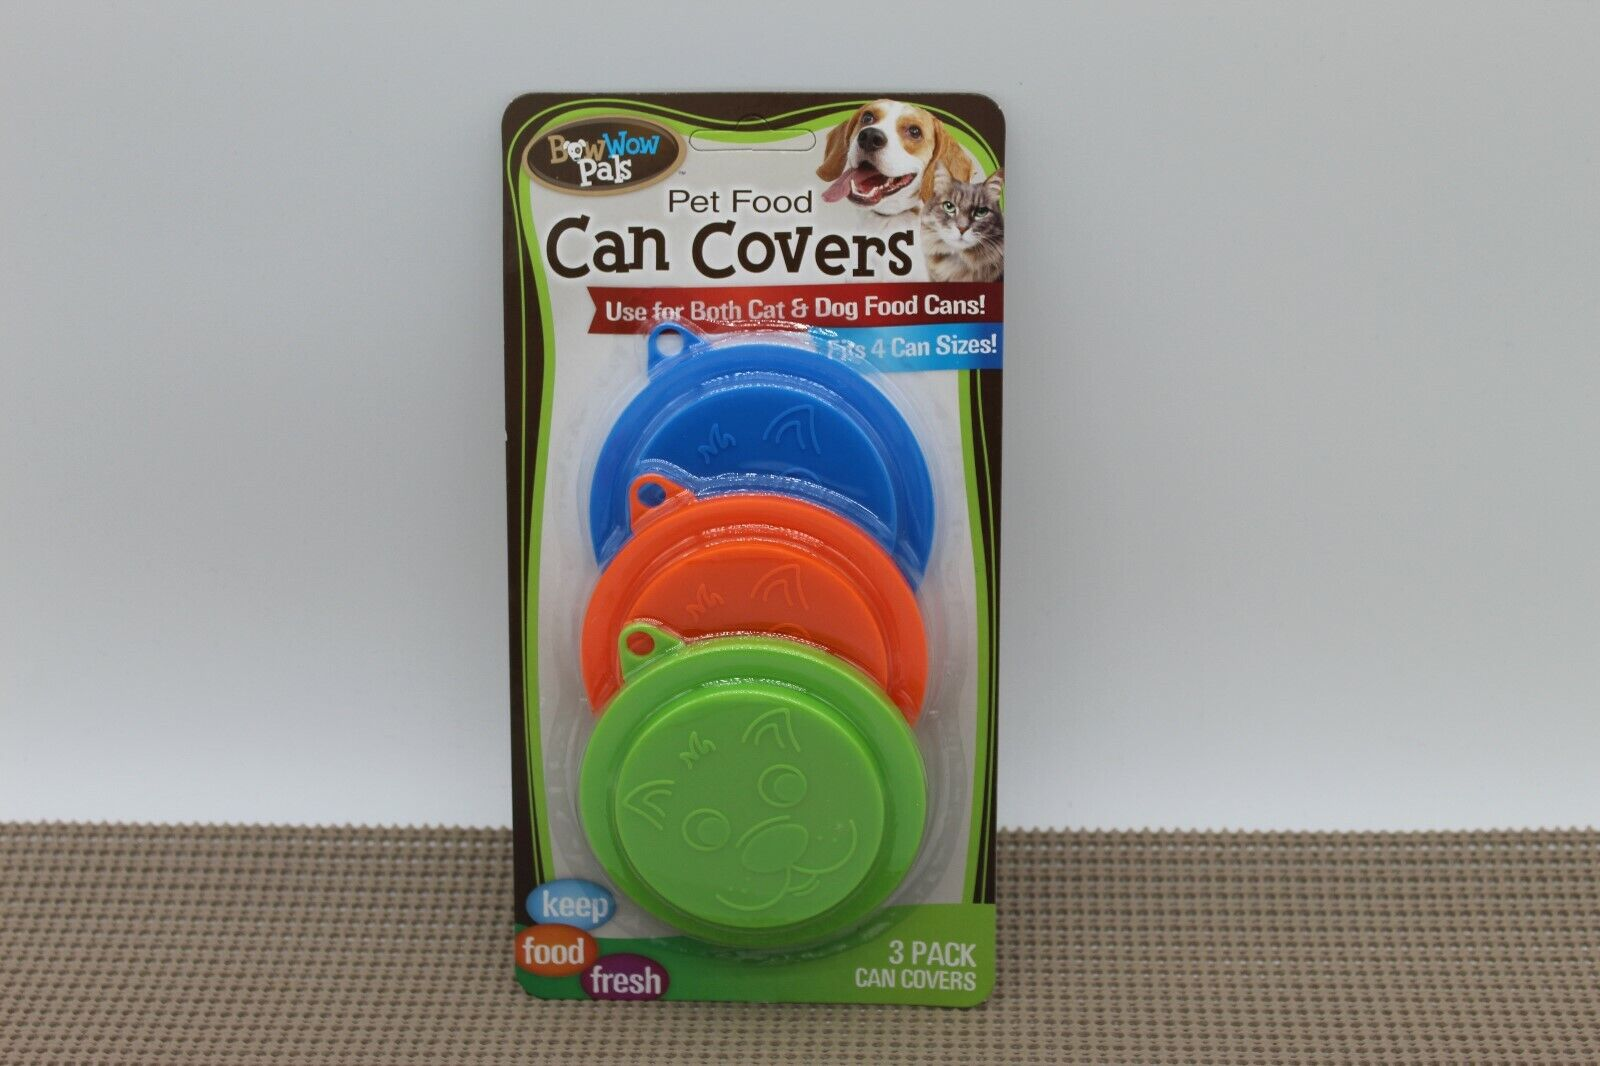 New Bow Wow Pet Food Can Covers, 3-Pack